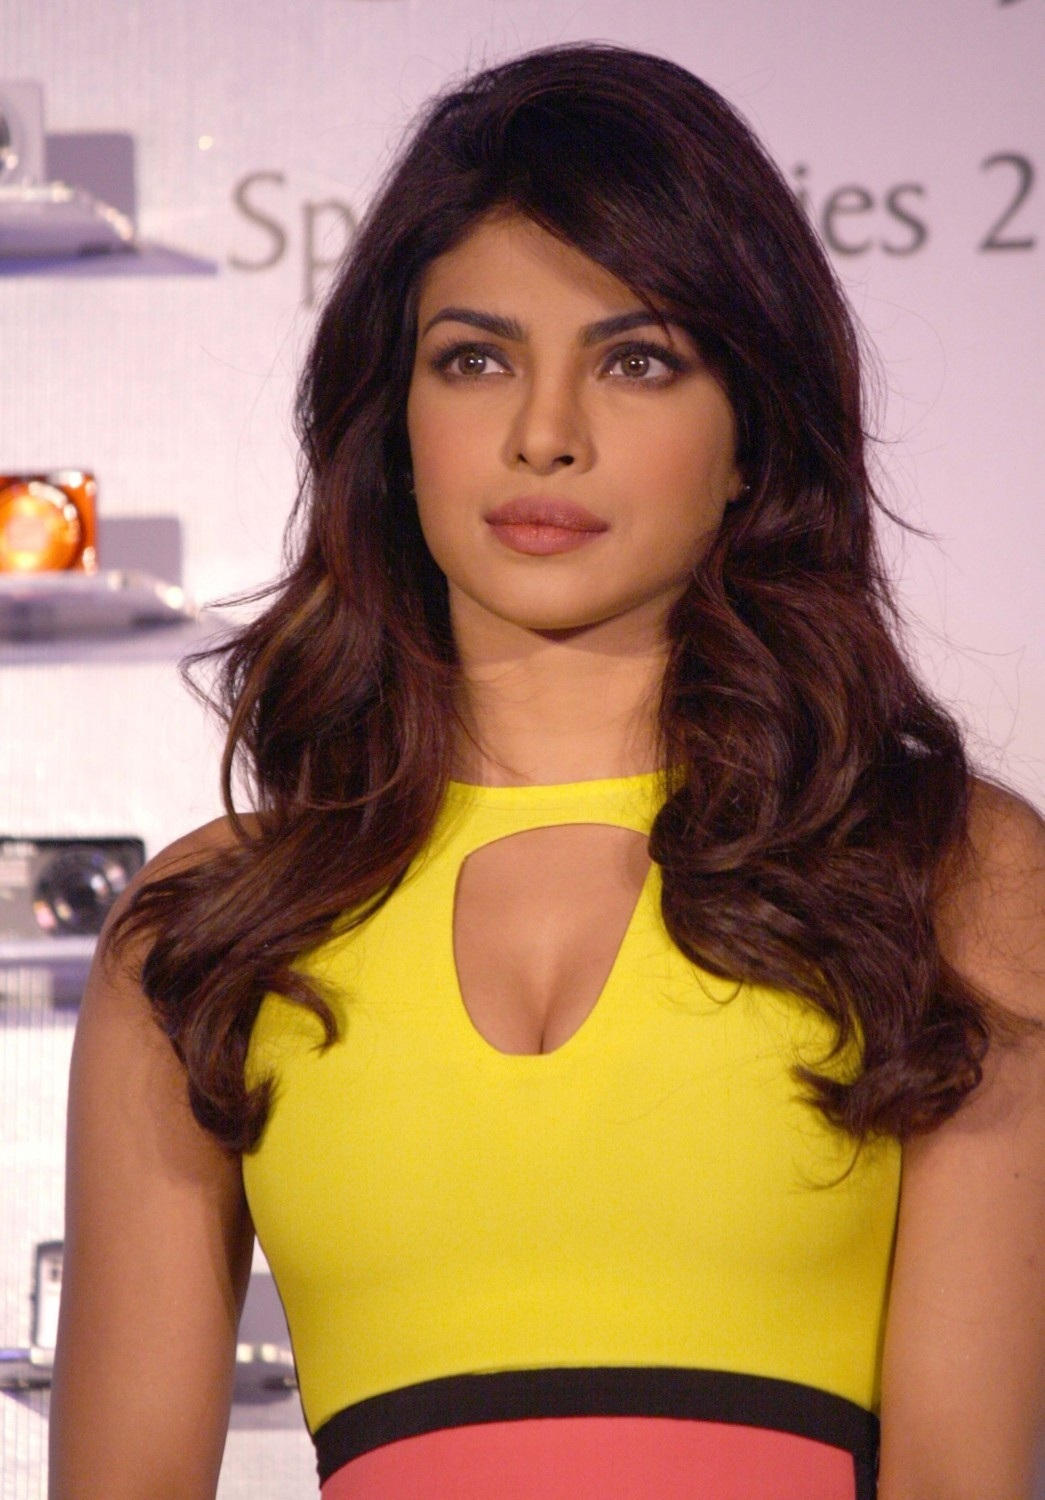 Priyanka Chopra At The Launch Of Nikon Collpix Spring Series Priyanka Chopra